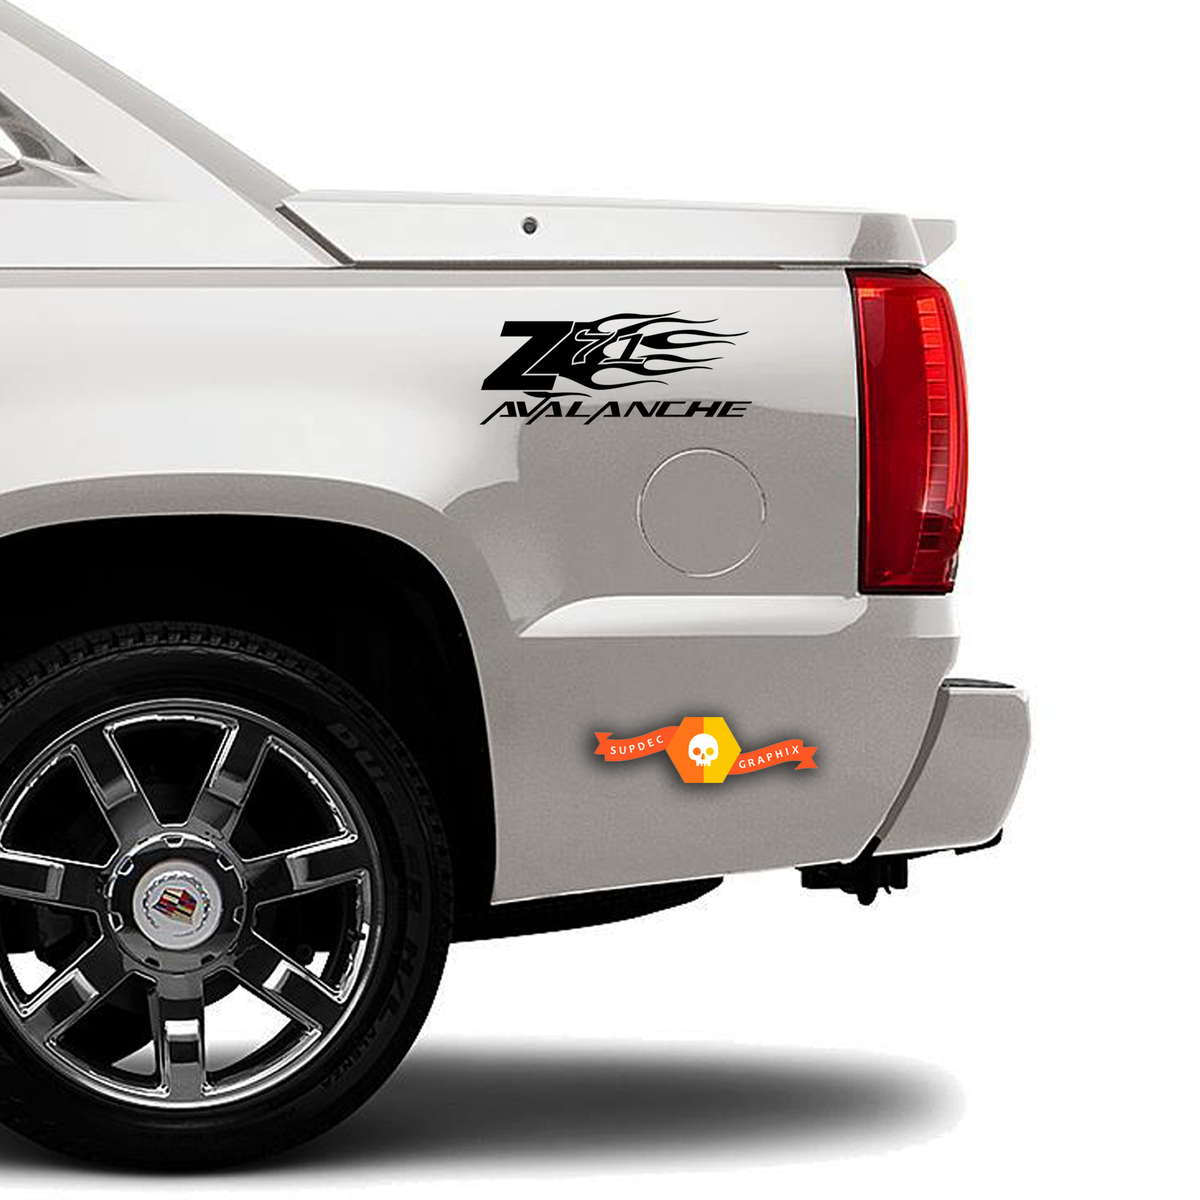 Z71 CHEVY AVALANCHE flame TRUCK BED SIDE  DECAL SET